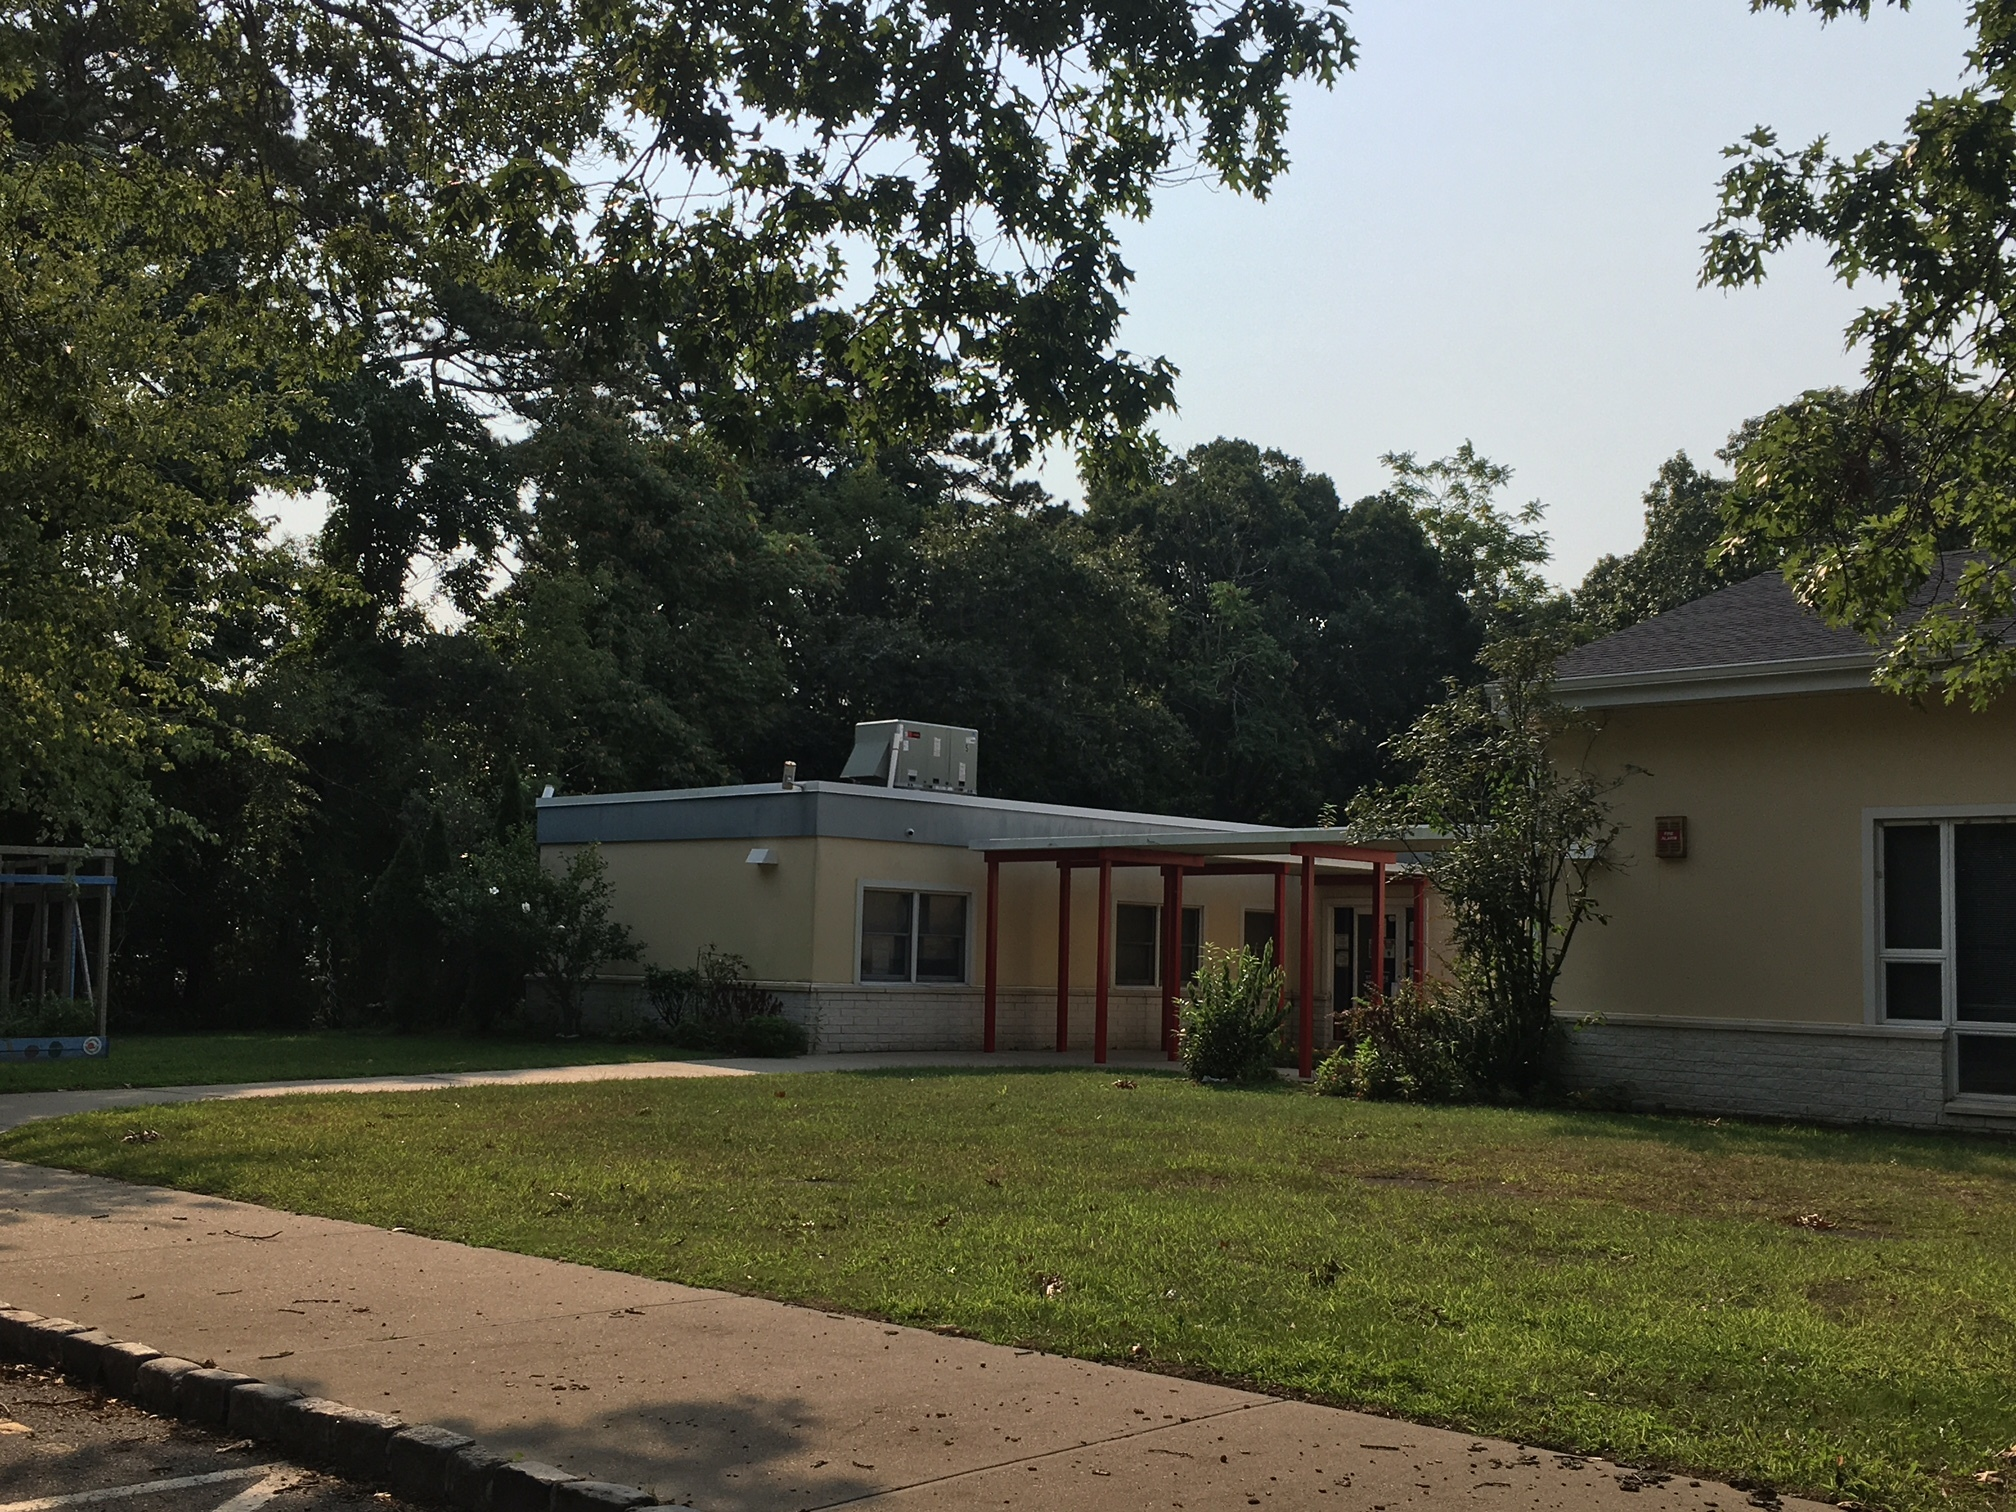 The community's wish list includes the expansion of the existing Riverside Child Enrichment Center on Flanders Road.